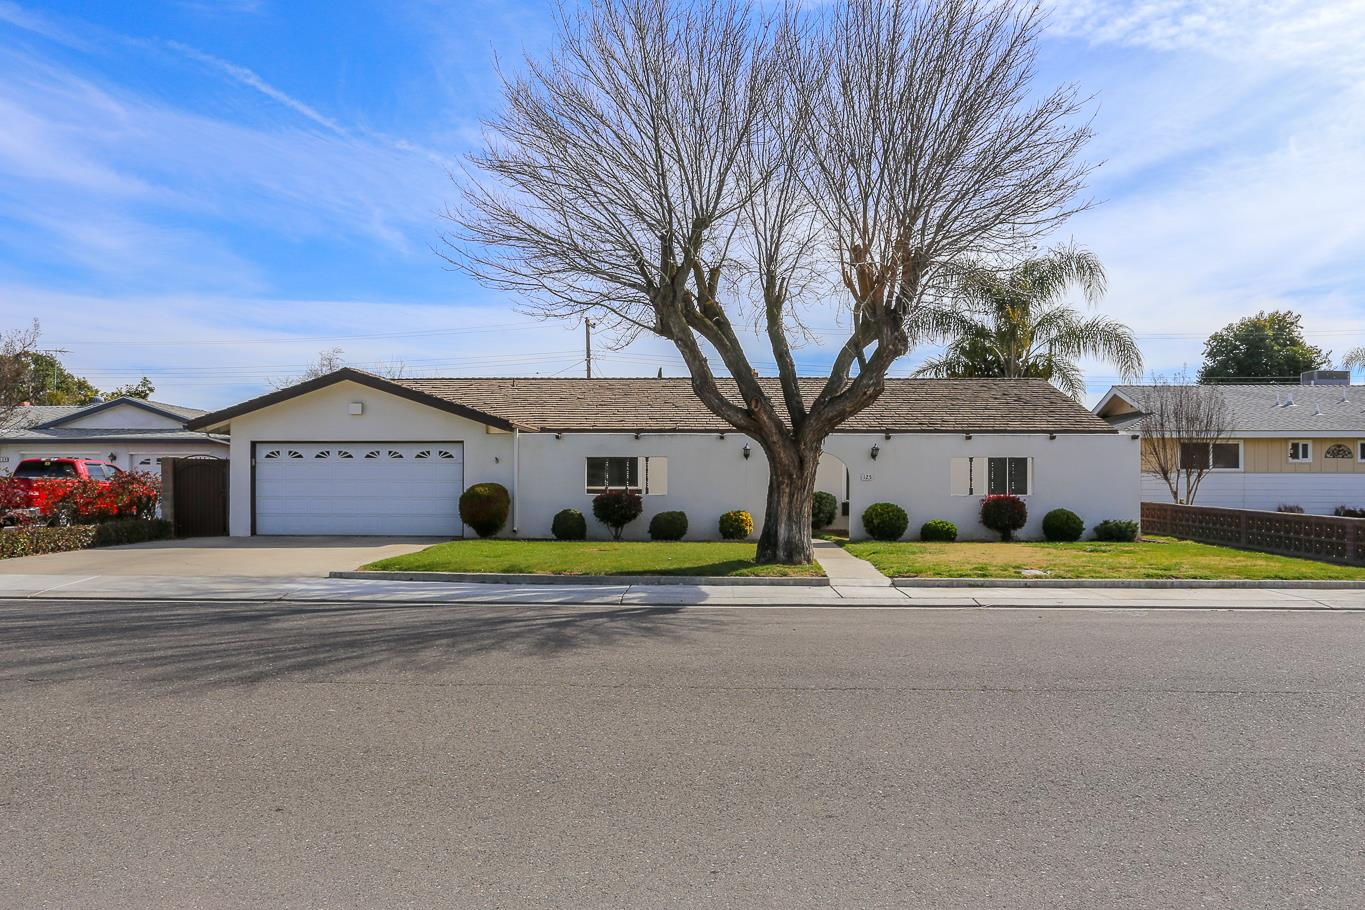 Single Family Home for Sale at 125 Gill Way 125 Gill Way Chowchilla, California 93610 United States